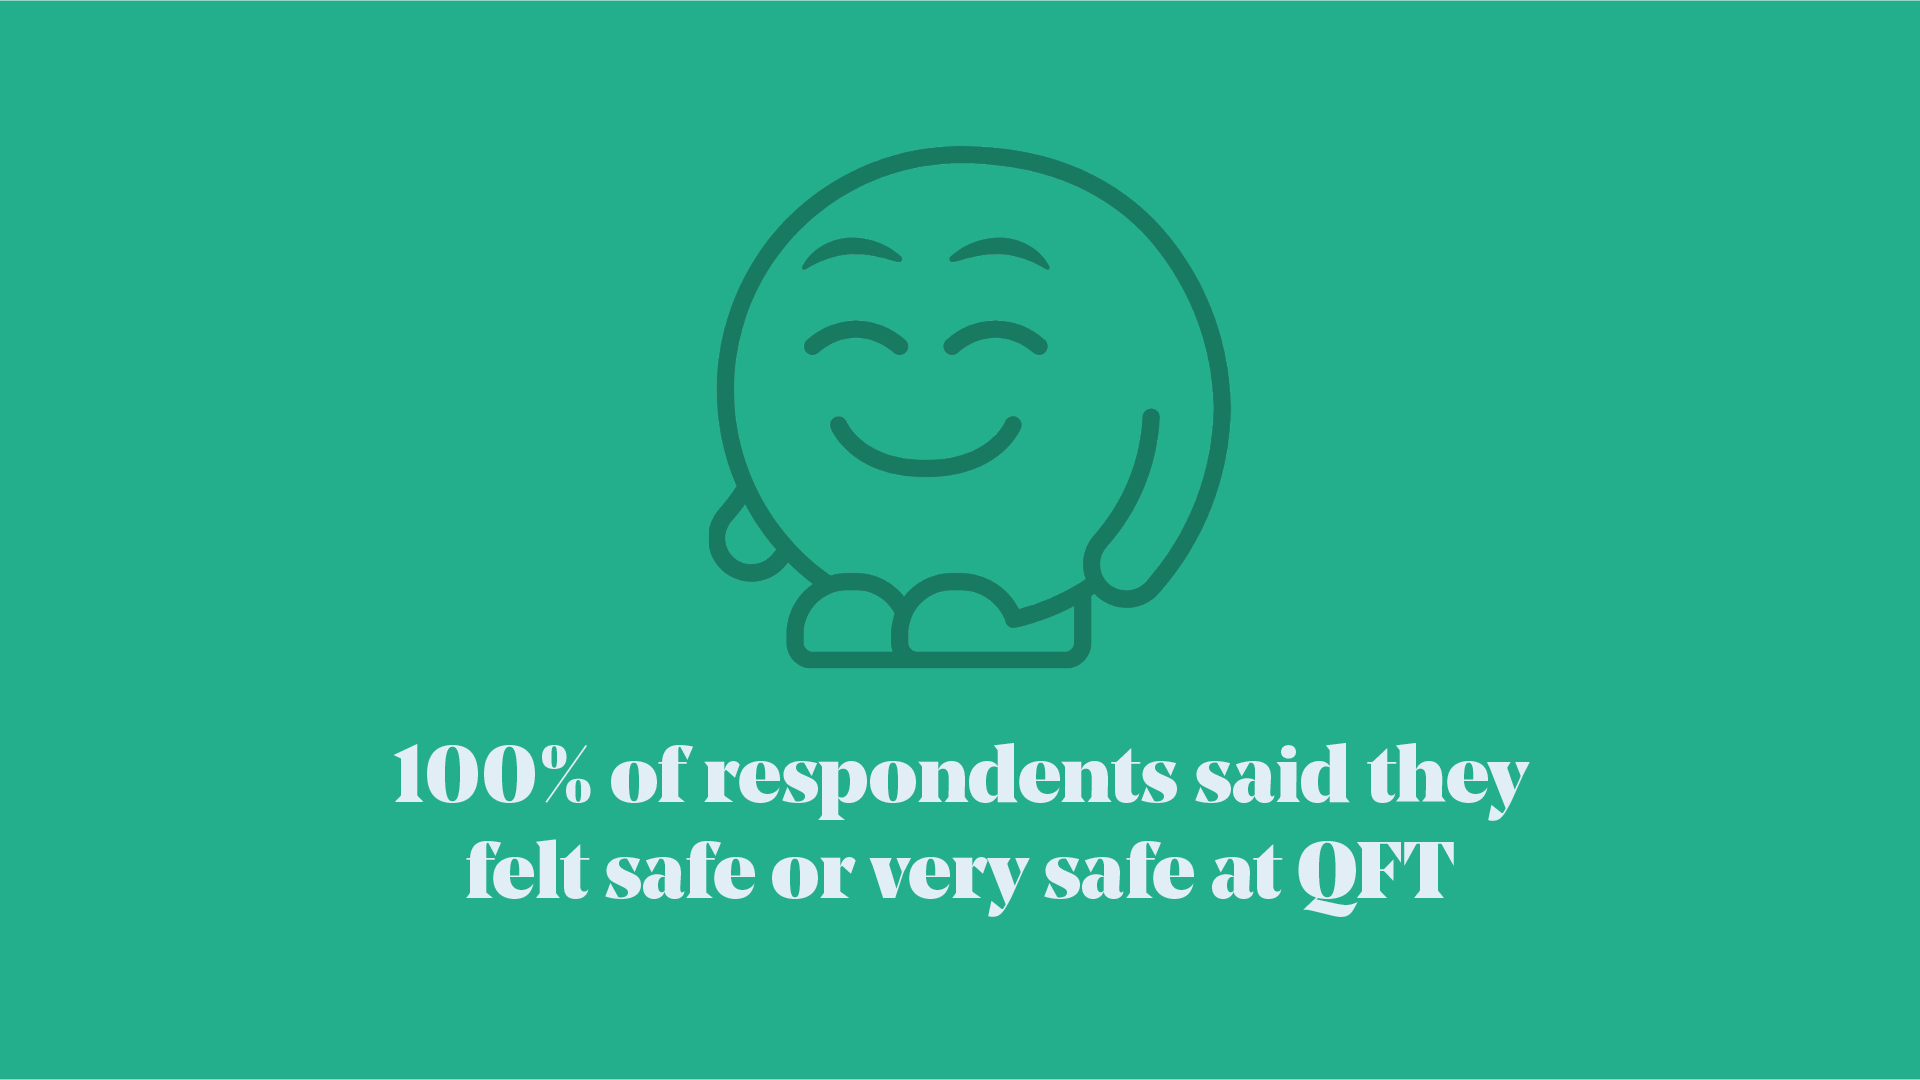 Dark green text on lighter green background 100% of respondents feel safe or very safe at QFT